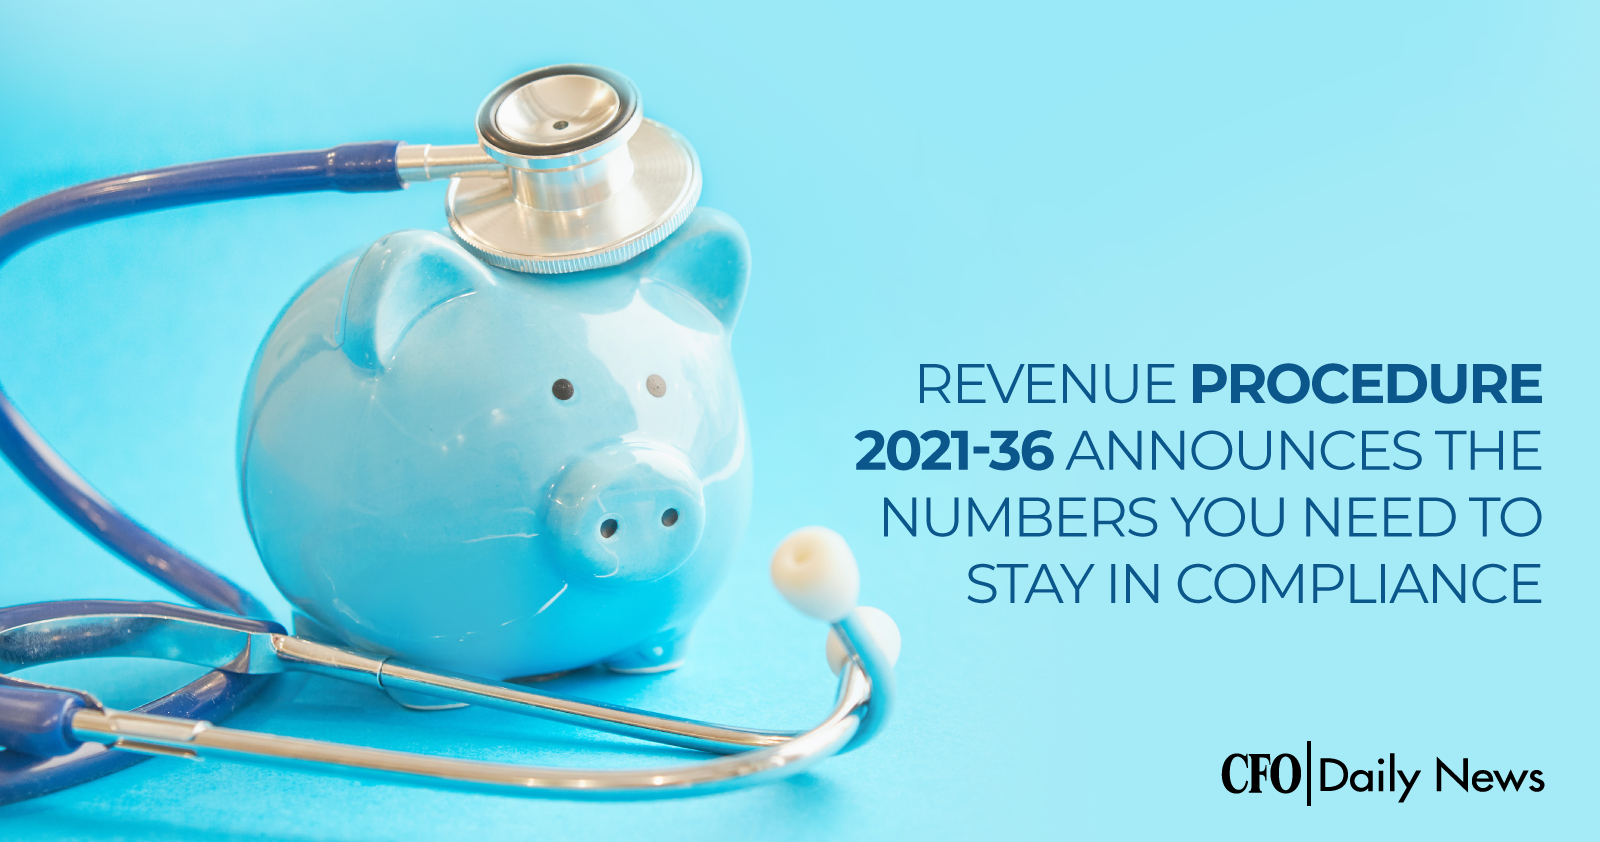 revenue procedure 2021-36announces the numbers you need to stay in compliance